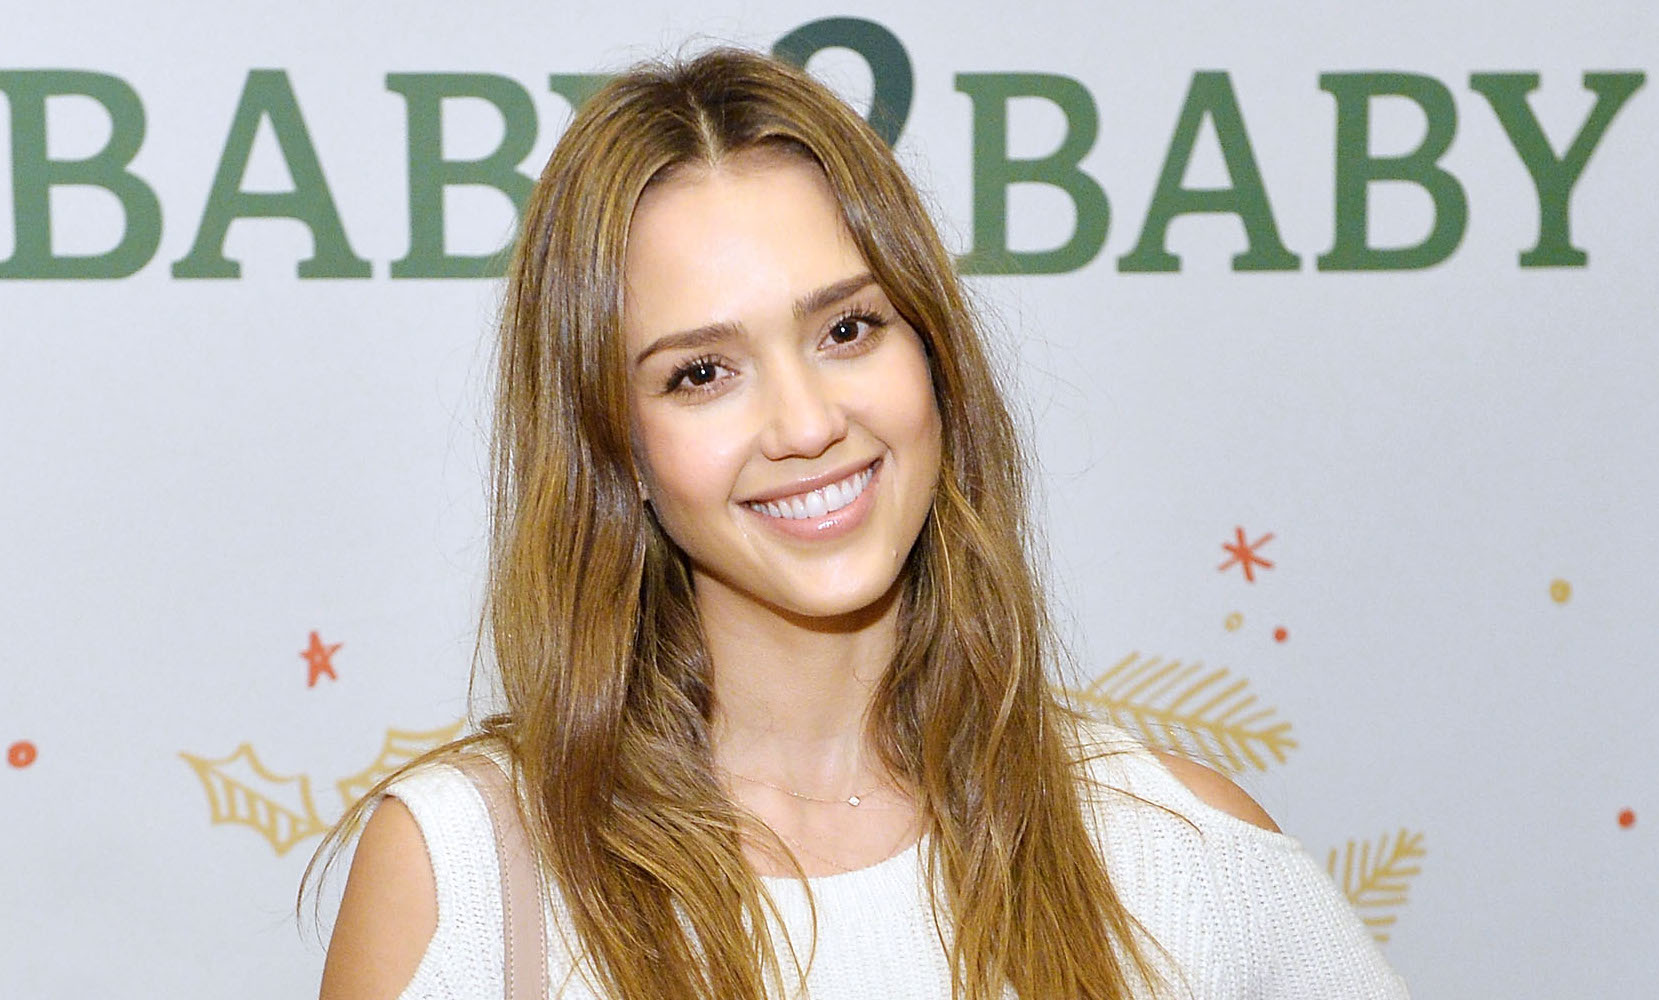 Jessica Alba wore a baggy sweatshirt with a metallic skirt, crushed the look